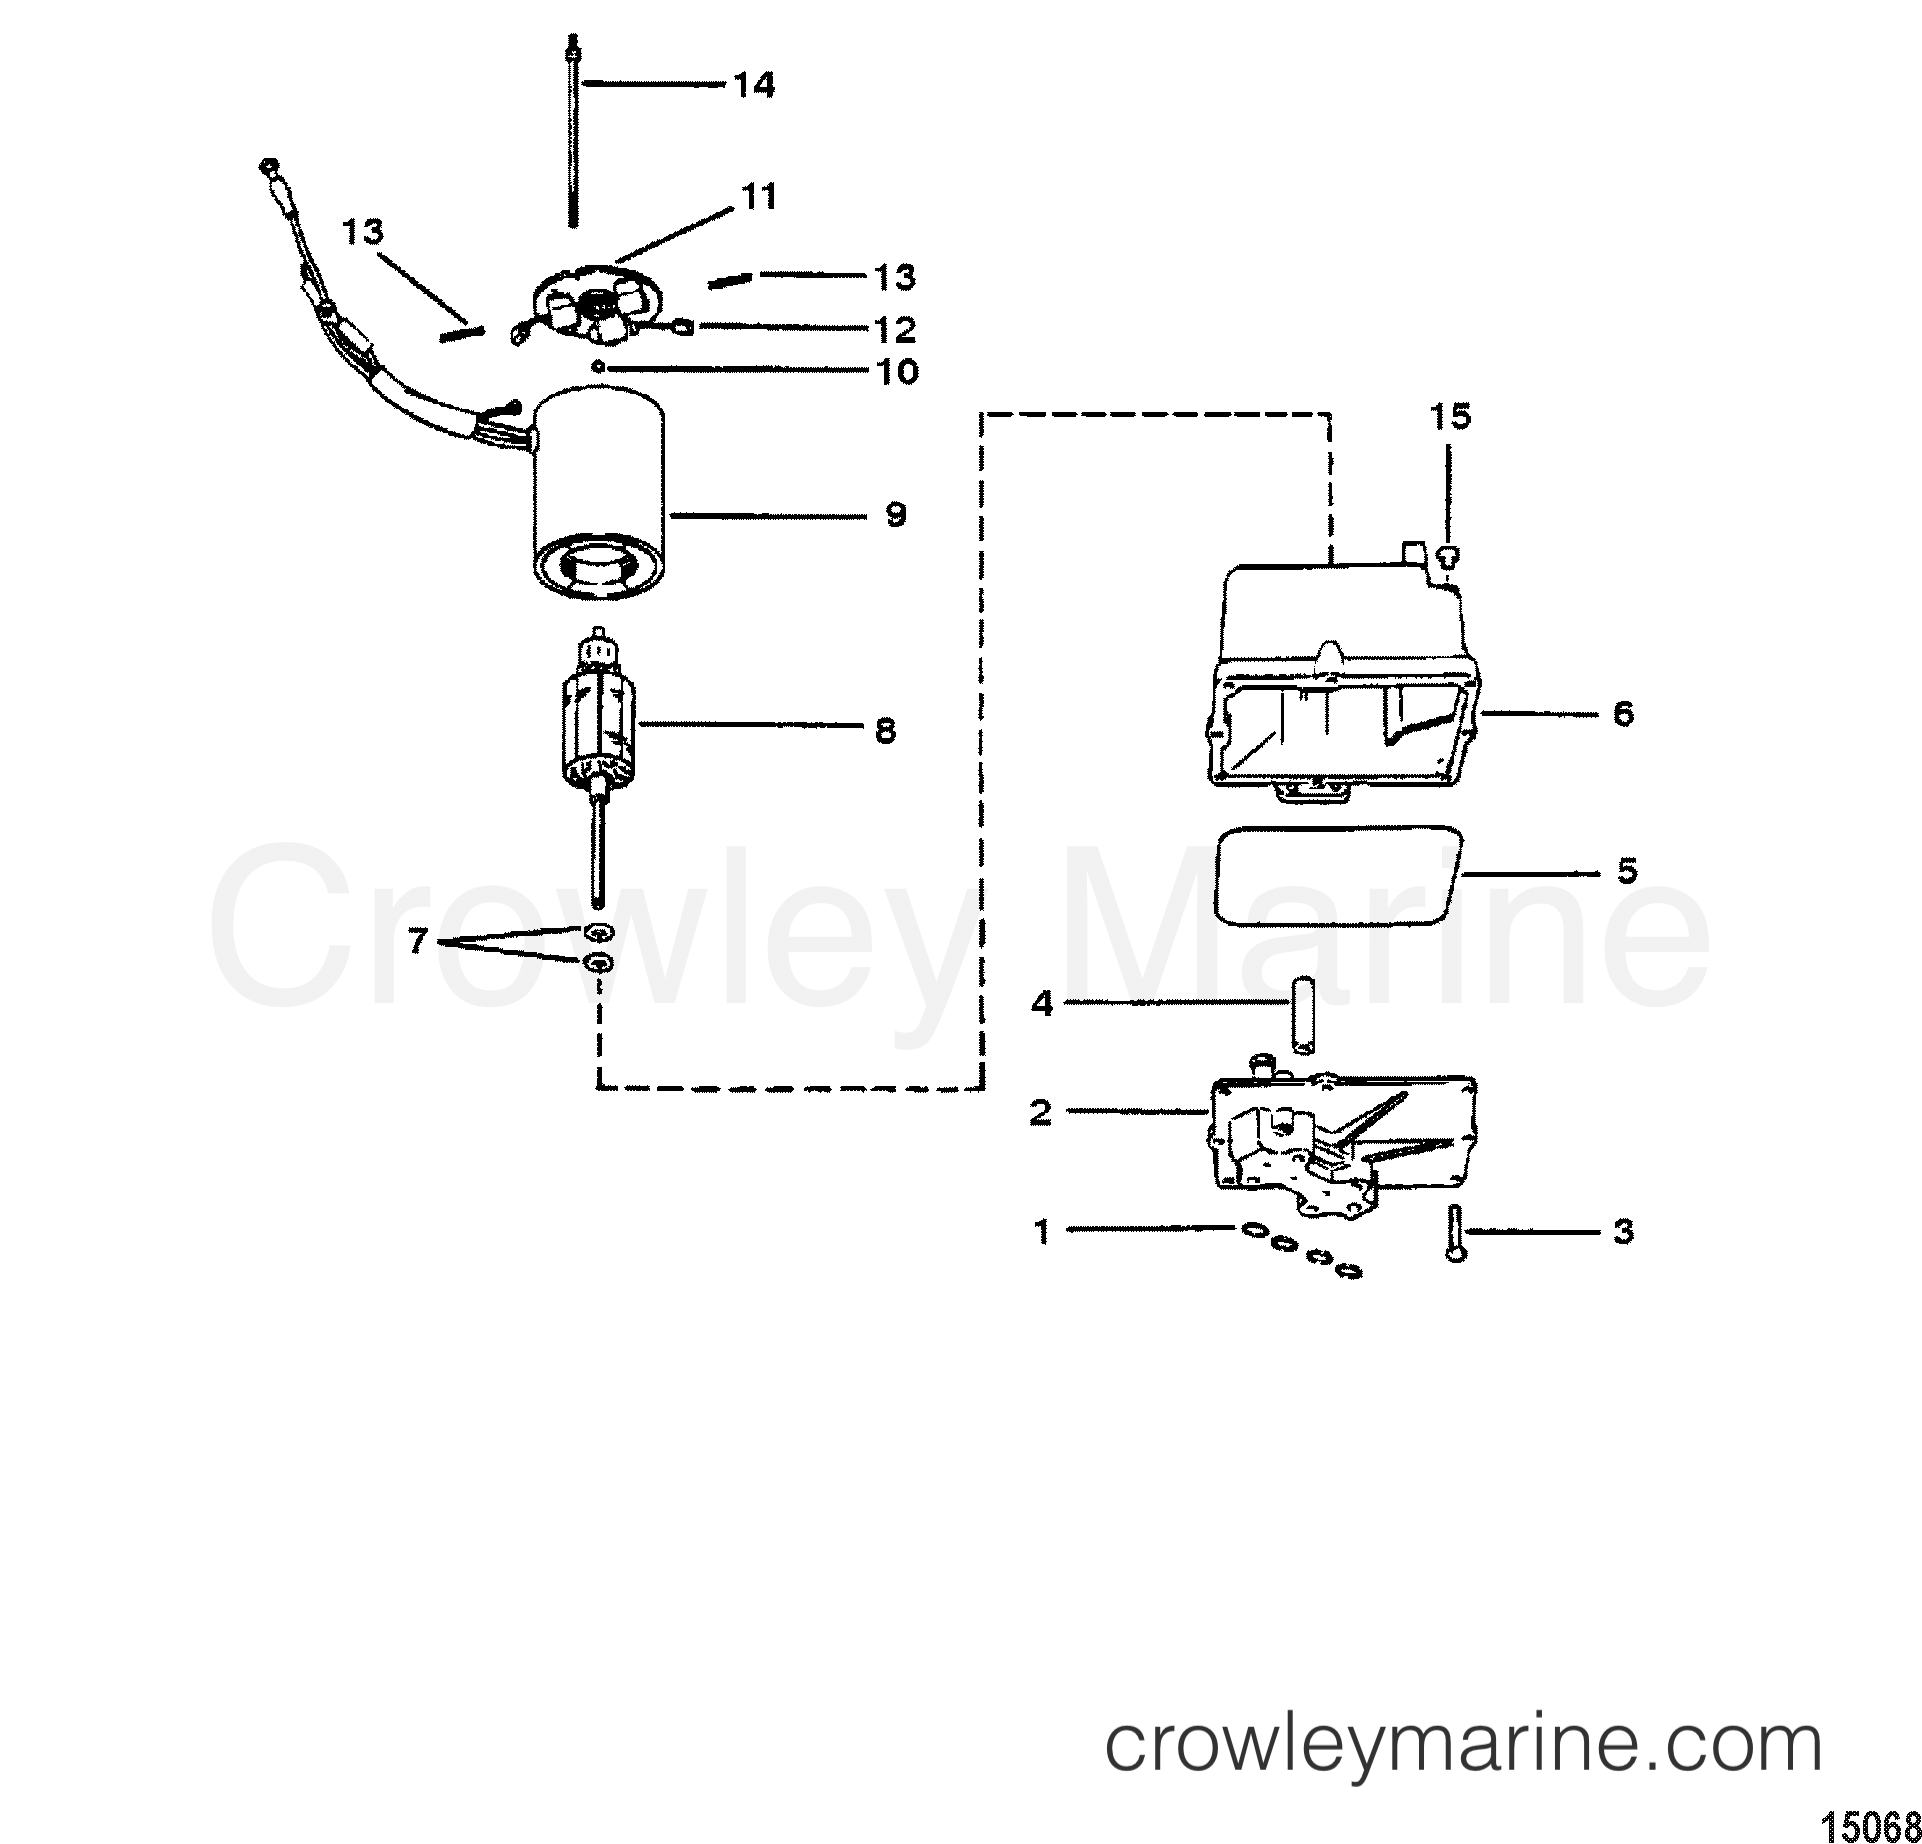 1980 Mercury Outboard 70 [ELPT] -  1070620 - HYDRAULIC PUMP ASSEMBLY(PLASTIC RESERVOIR) section